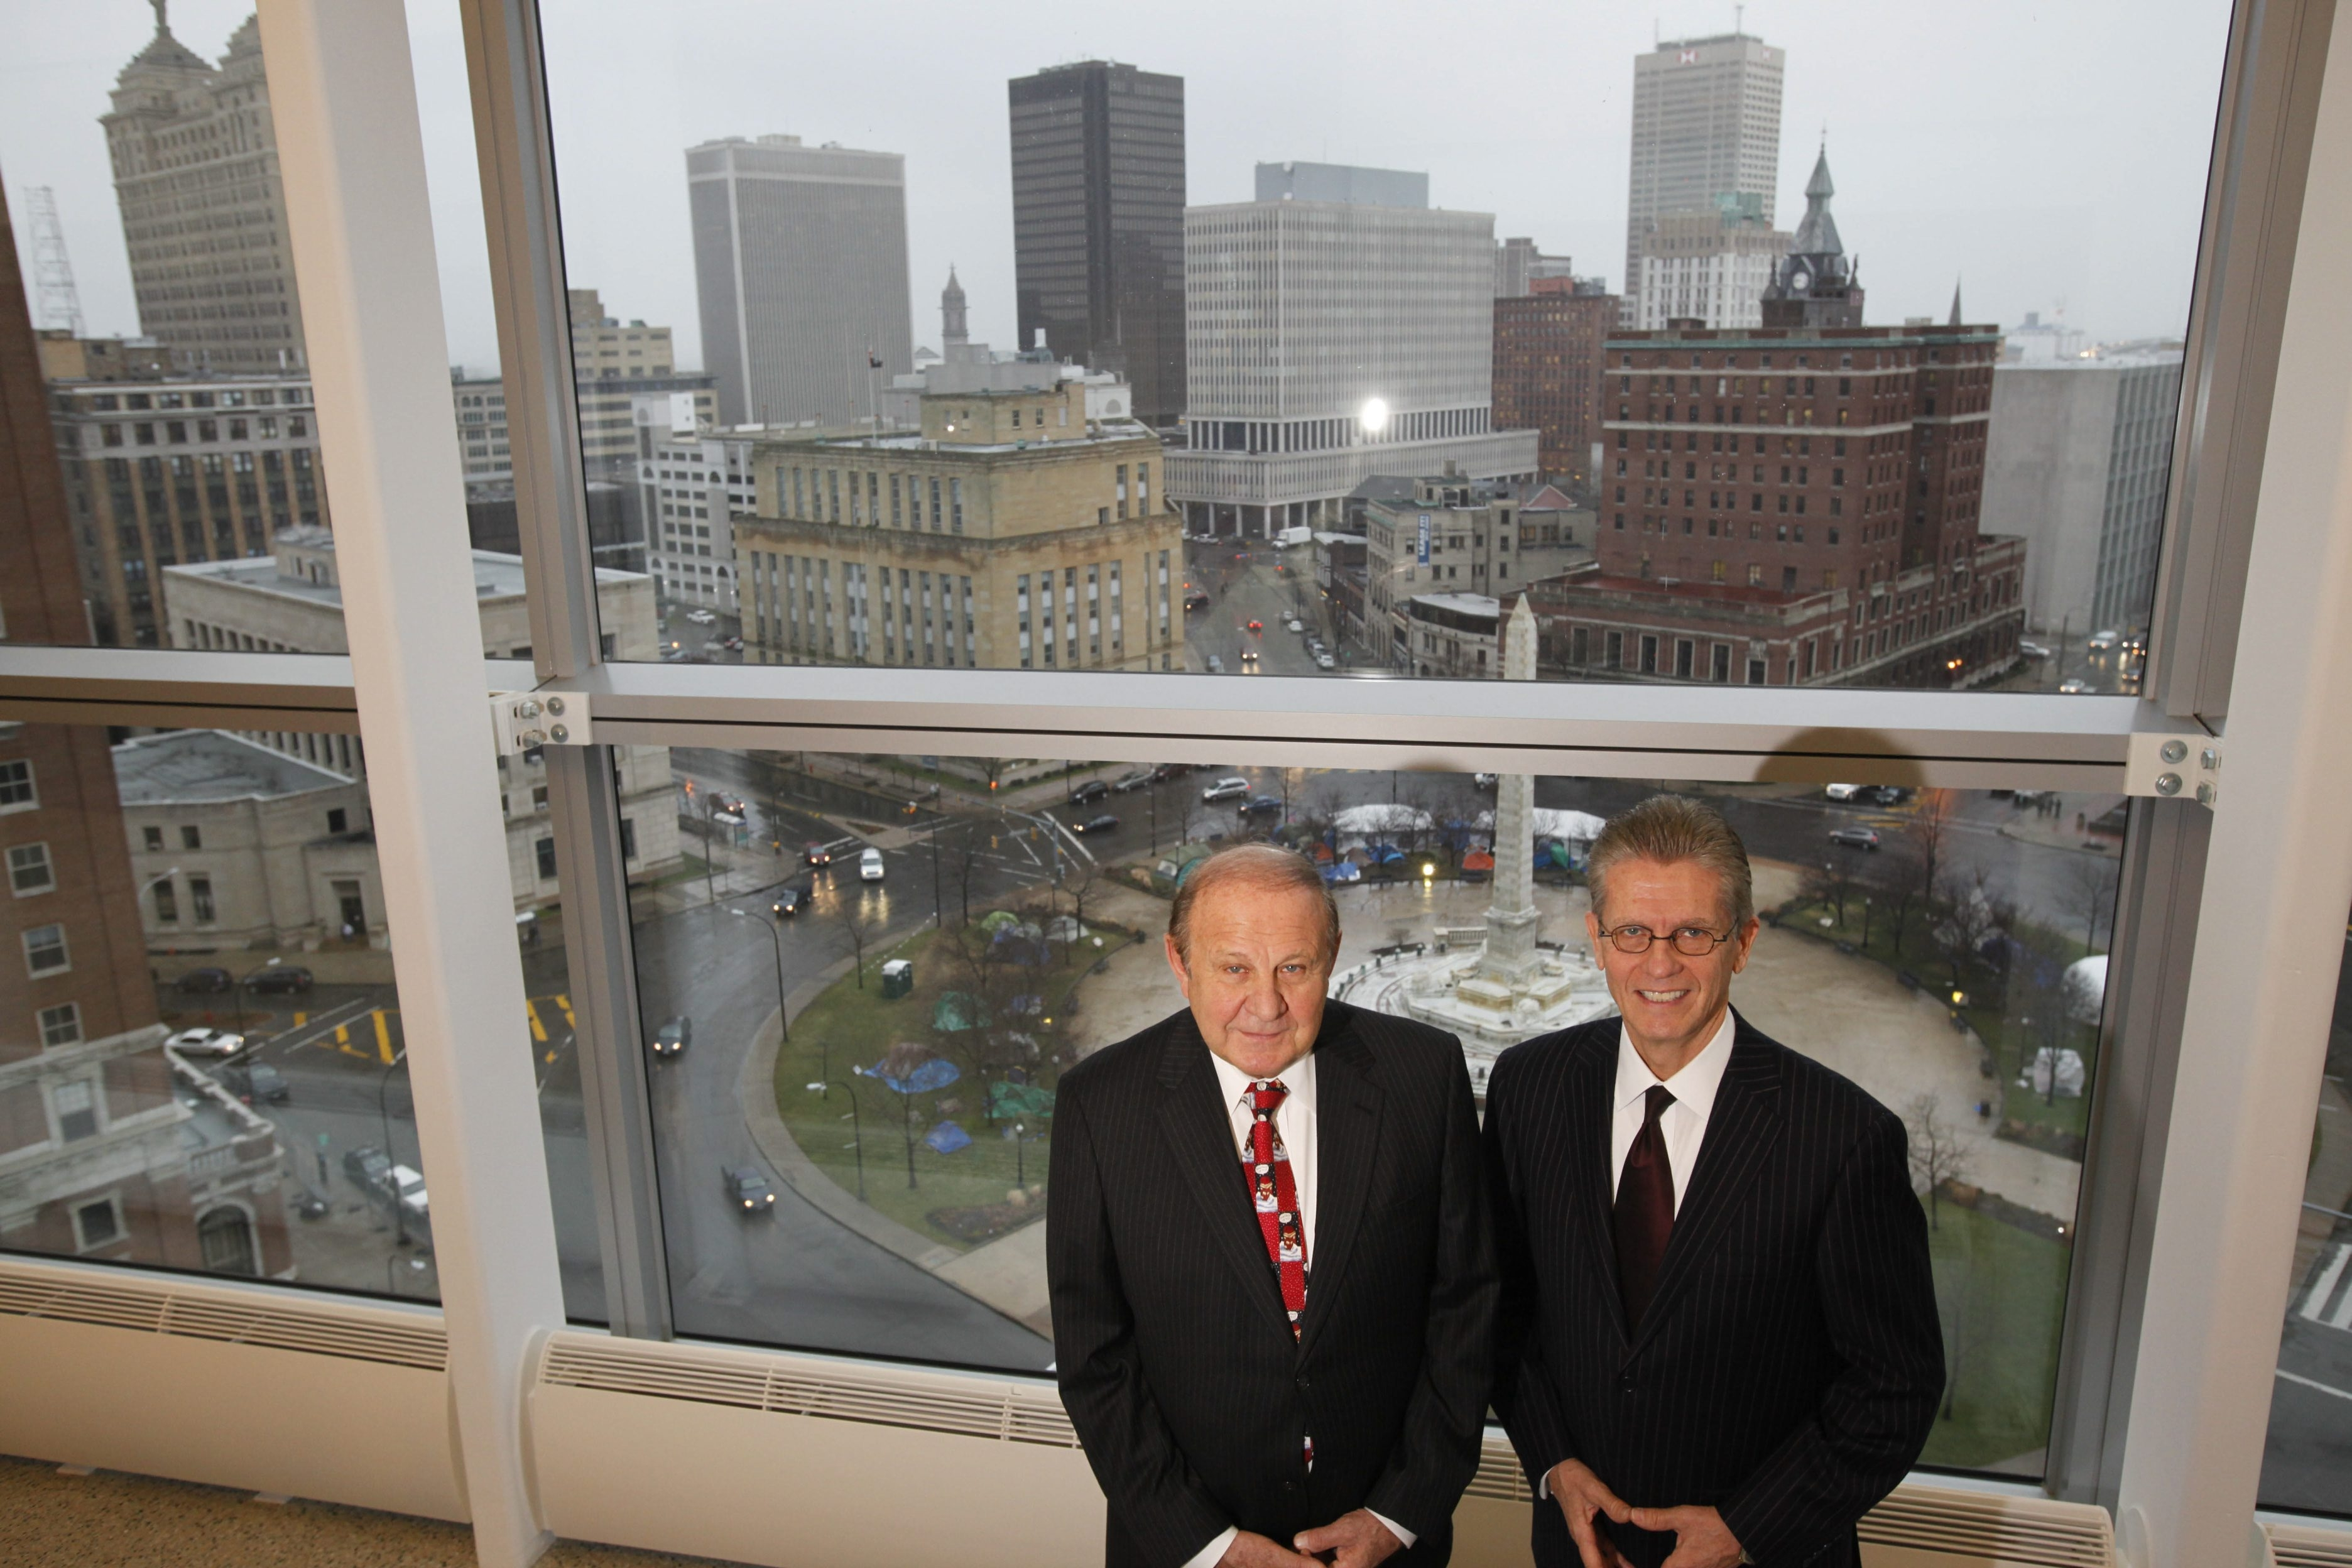 U.S. District Judges Richard J. Arcara, left, and William M. Skretny, pictured in a file photo taken at the federal courthouse, have both moved to senior status. (Derek Gee / Buffalo News file photo)